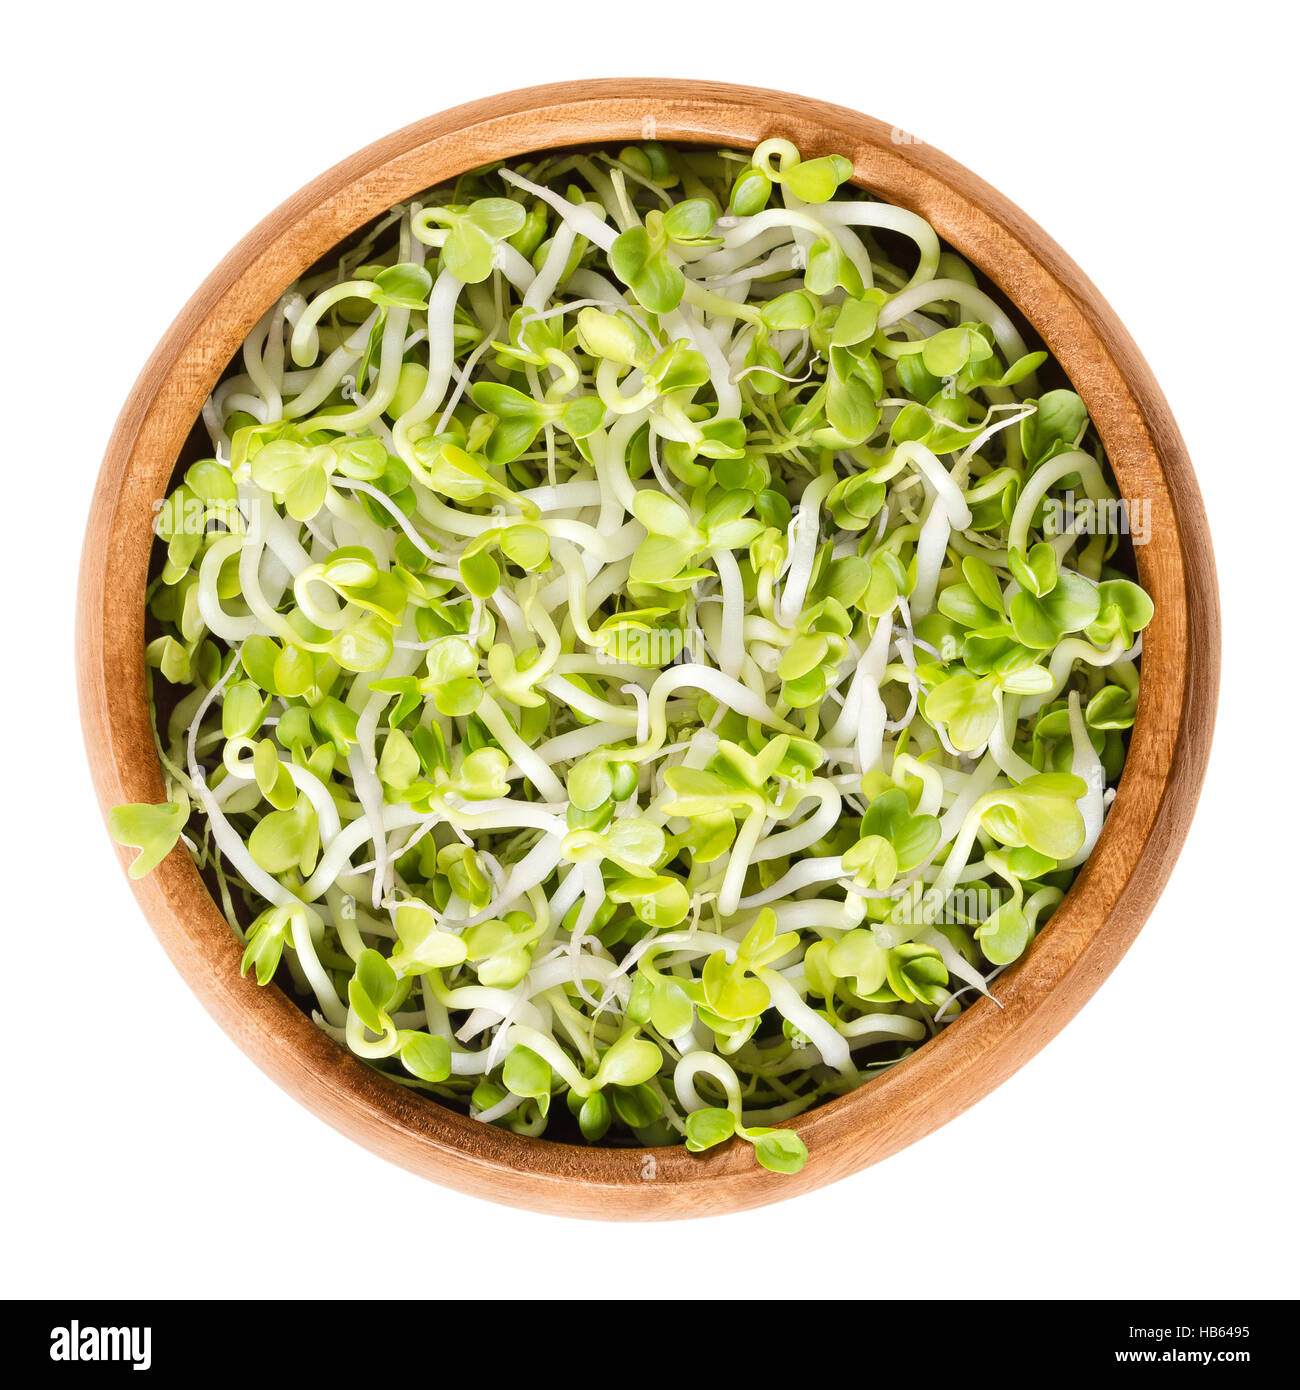 Radish sprouts in wooden bowl. Fresh yellow green germinated seeds of the root vegetable Raphanus sativus. Stock Photo